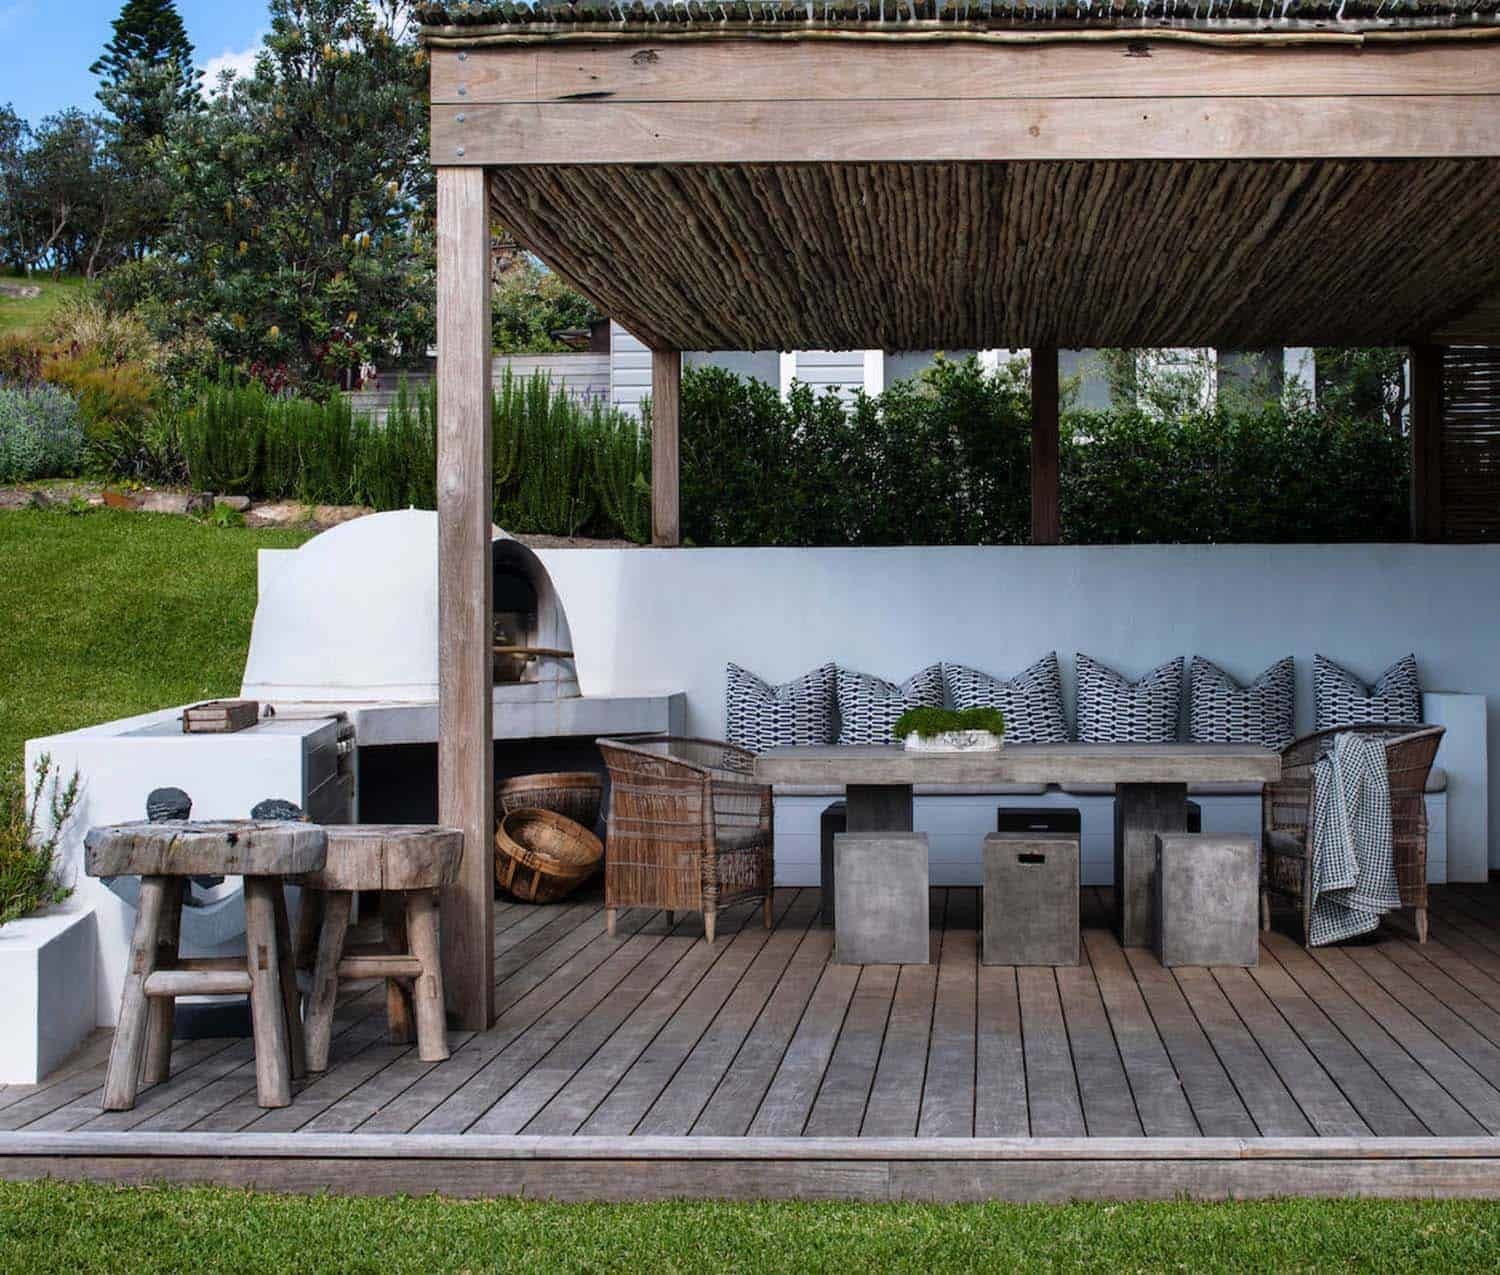 Outdoor living features can transform a yard, maximizing the livable space and providing enjoyment for your family